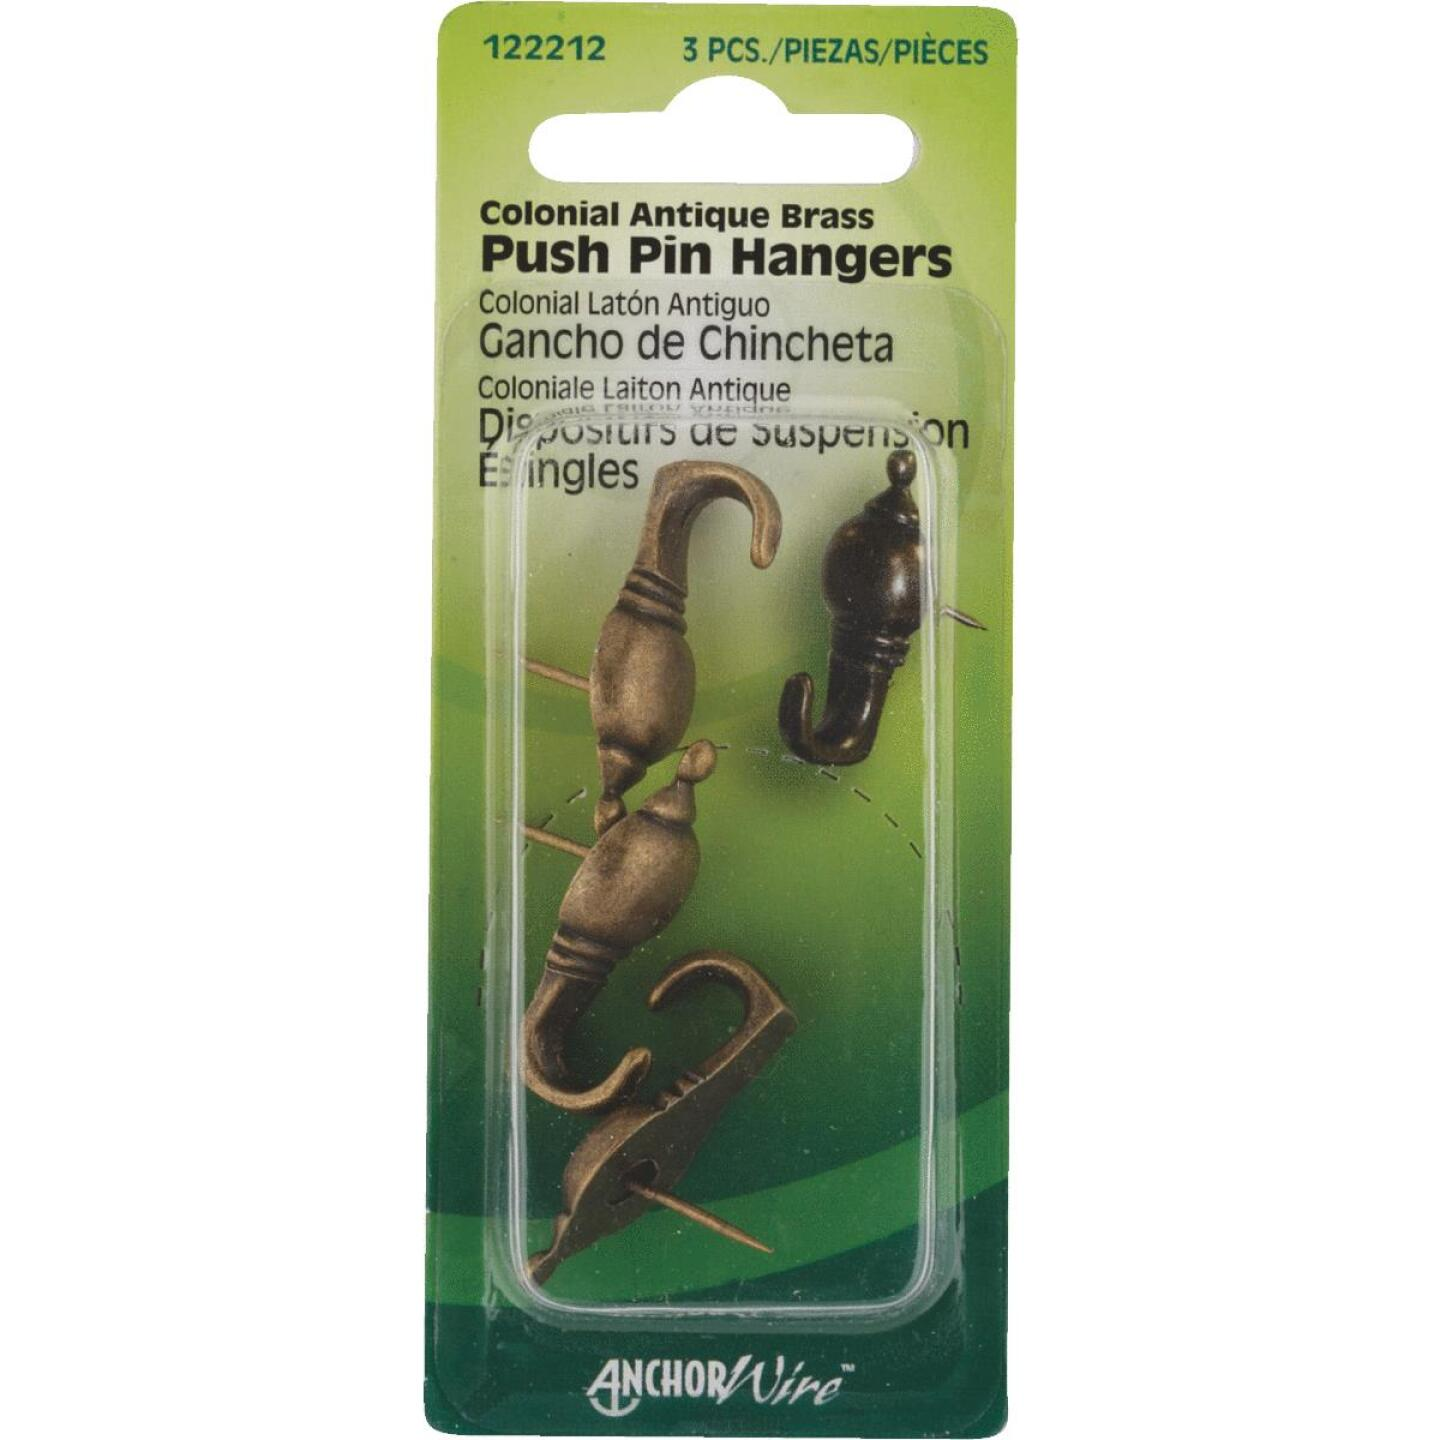 Hillman Anchor Wire Antique Brass Colonial Decorative Push Pin Hanger (3 Count) Image 1